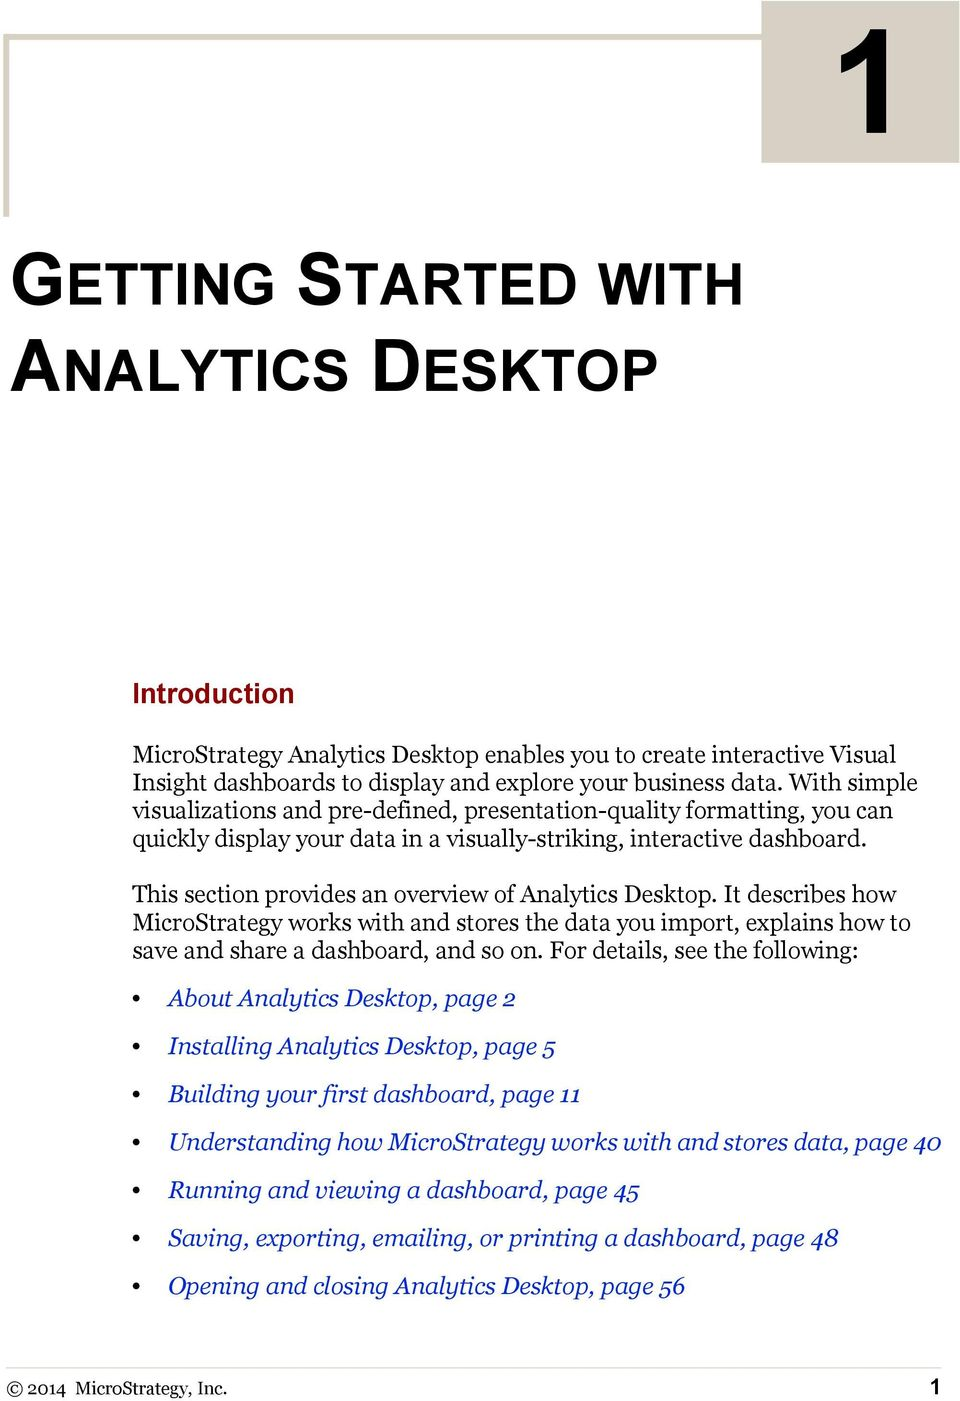 This section provides an overview of Analytics Desktop. It describes how MicroStrategy works with and stores the data you import, explains how to save and share a dashboard, and so on.